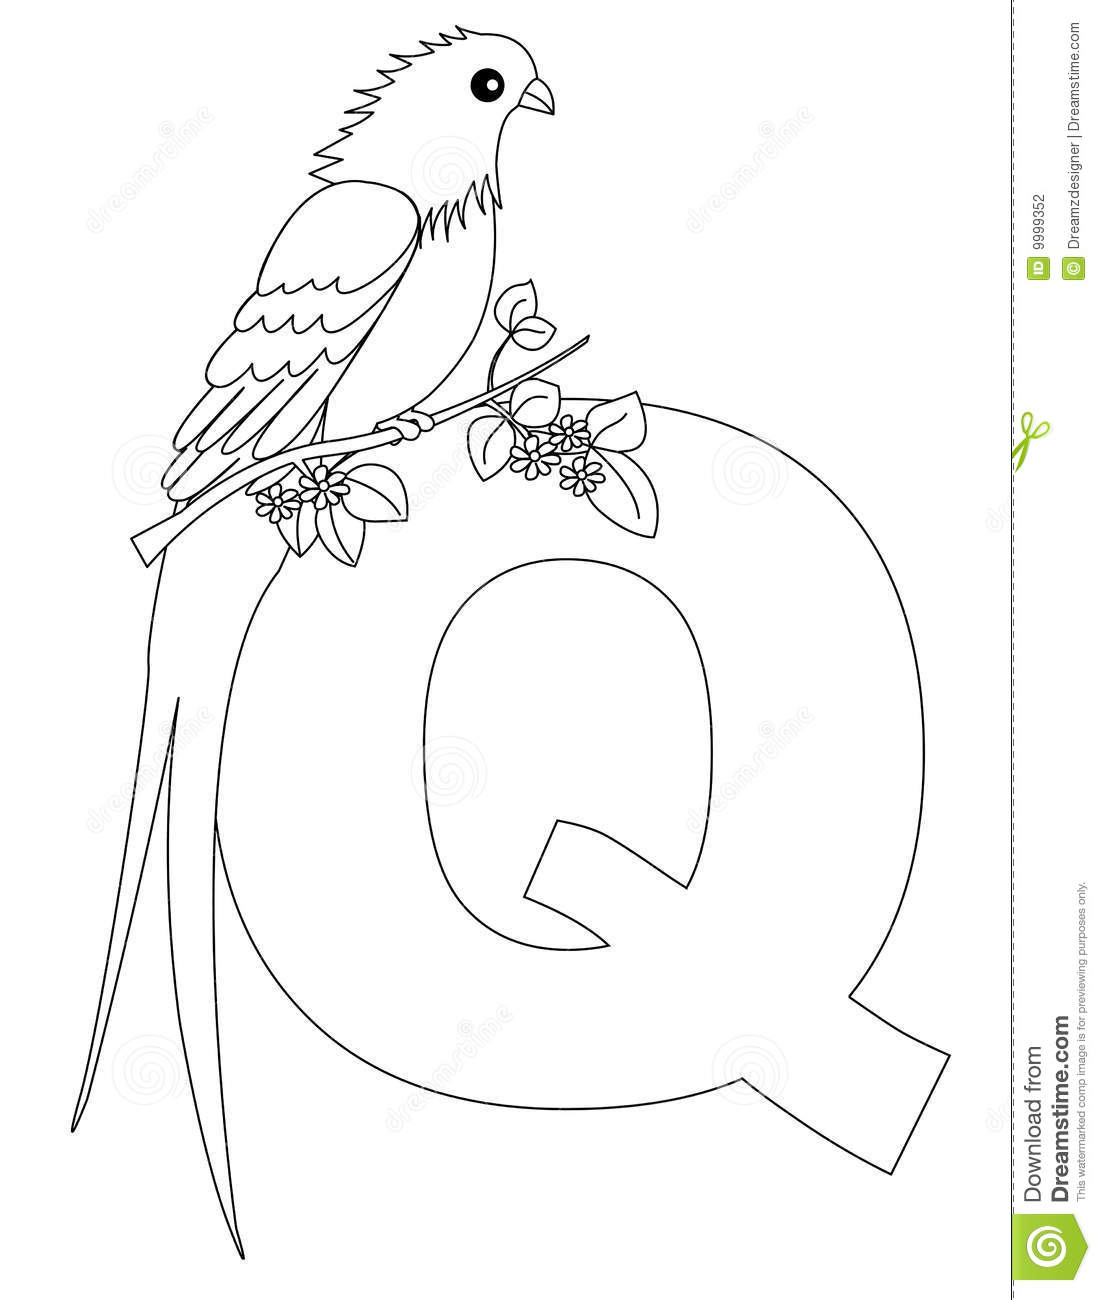 Animal Alphabet Q Coloring Page Stock Vector Illustration Of